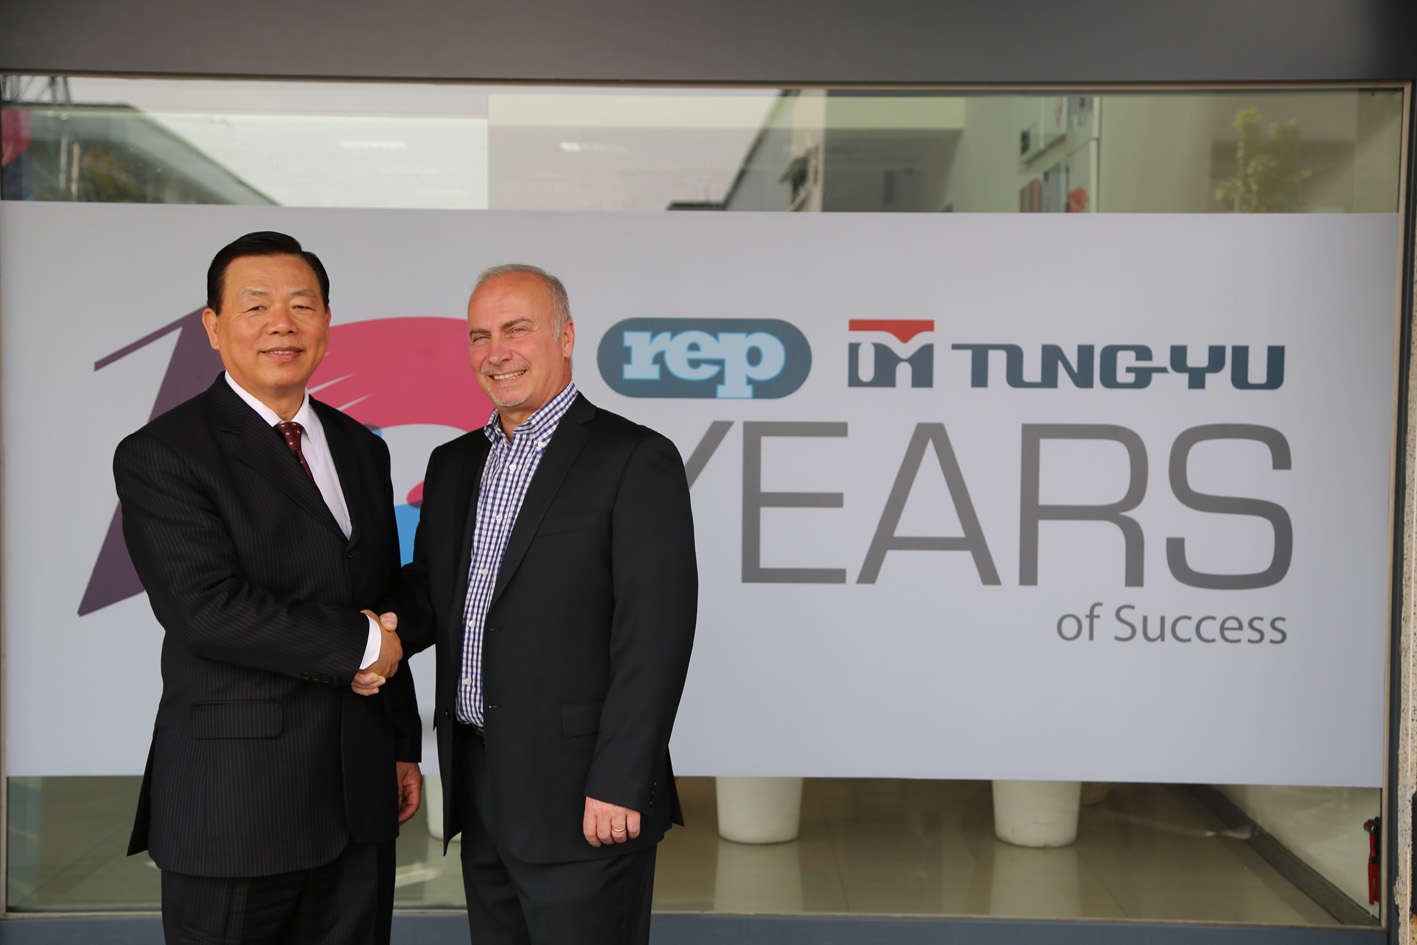 Cooperation between REP and TUNGYU